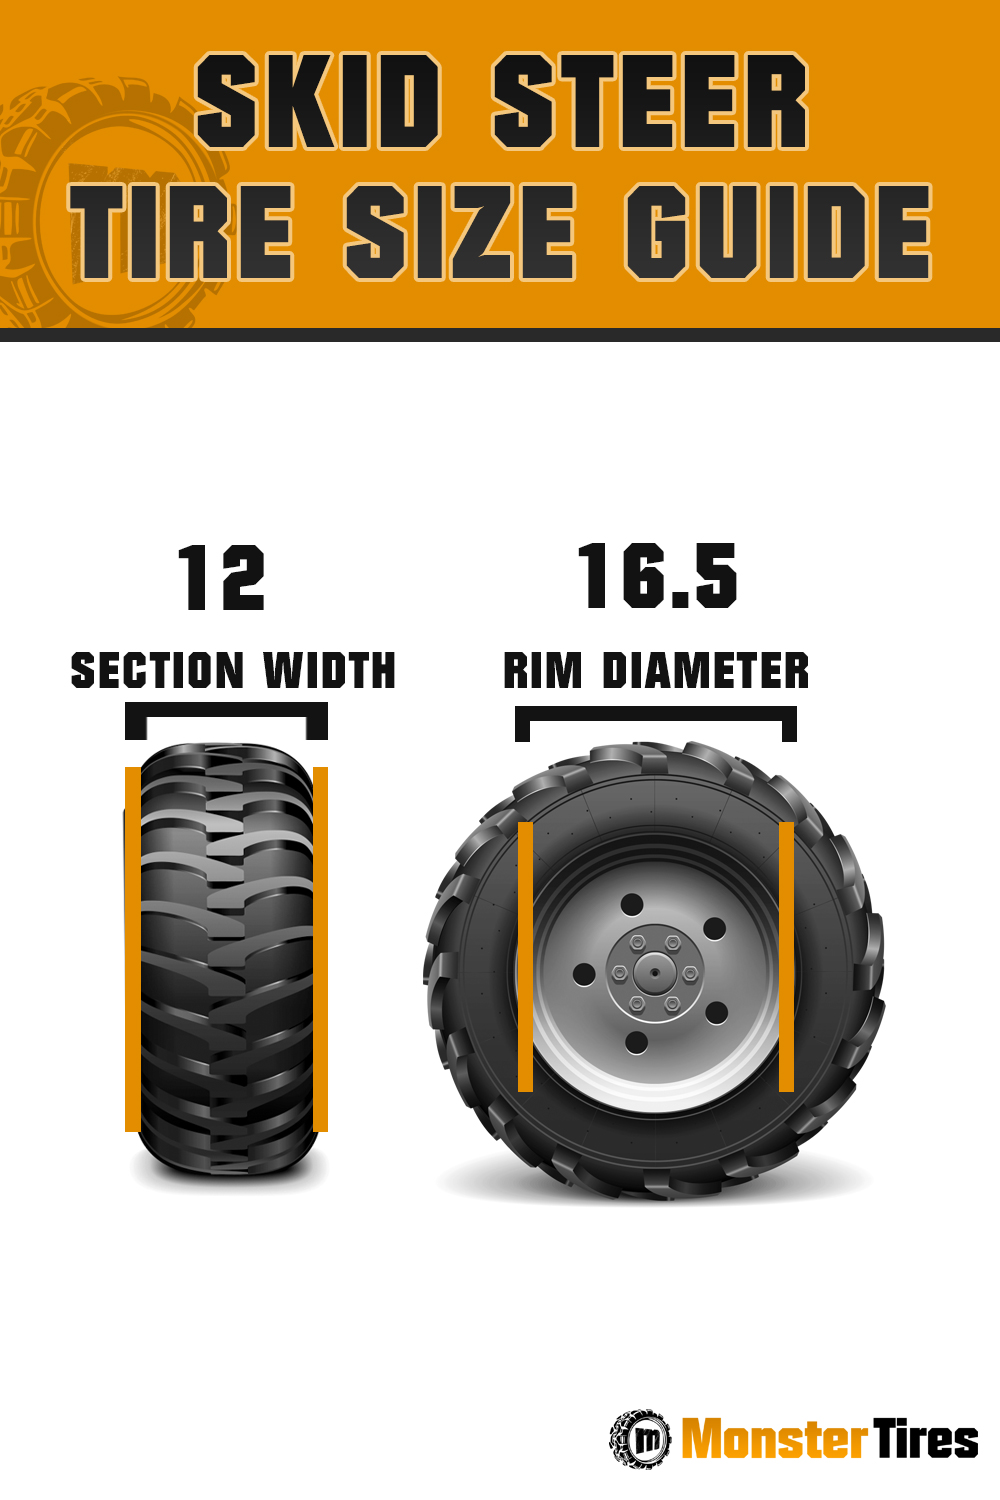 Tire Size Meaning >> Skid Steer Tires Skid Steer Tires And Tire Size Guide